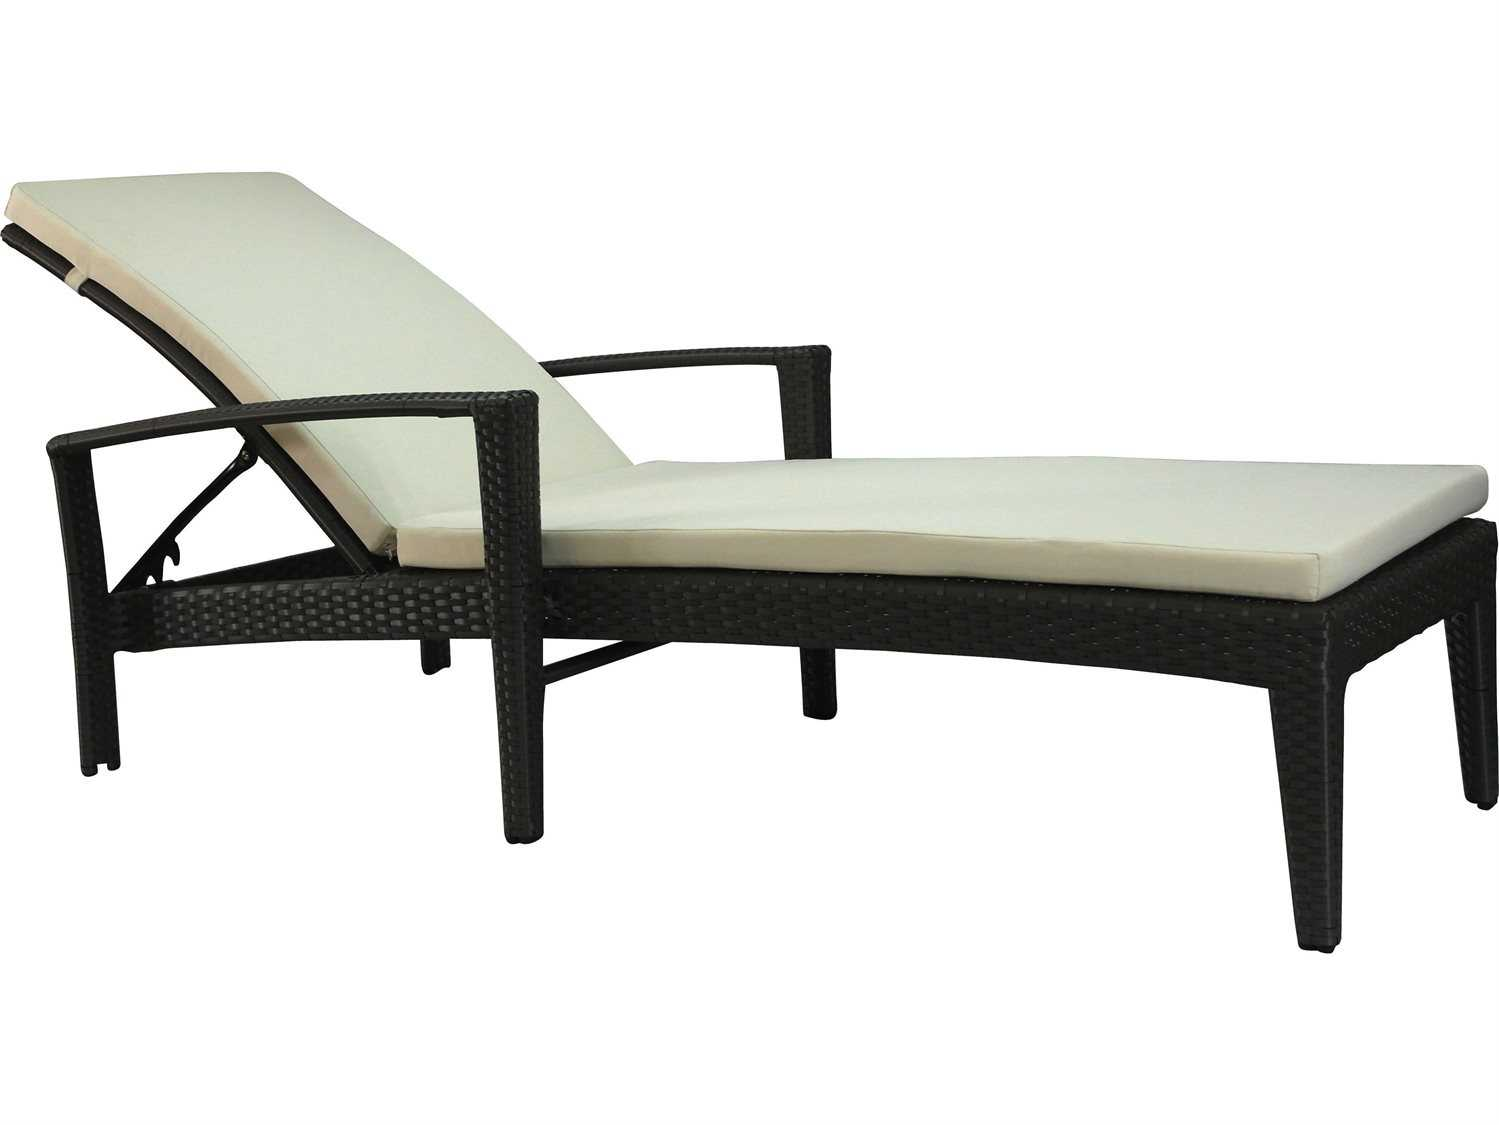 Jaavan Fidji Wicker Chaise Lounge With Arm Jvja113